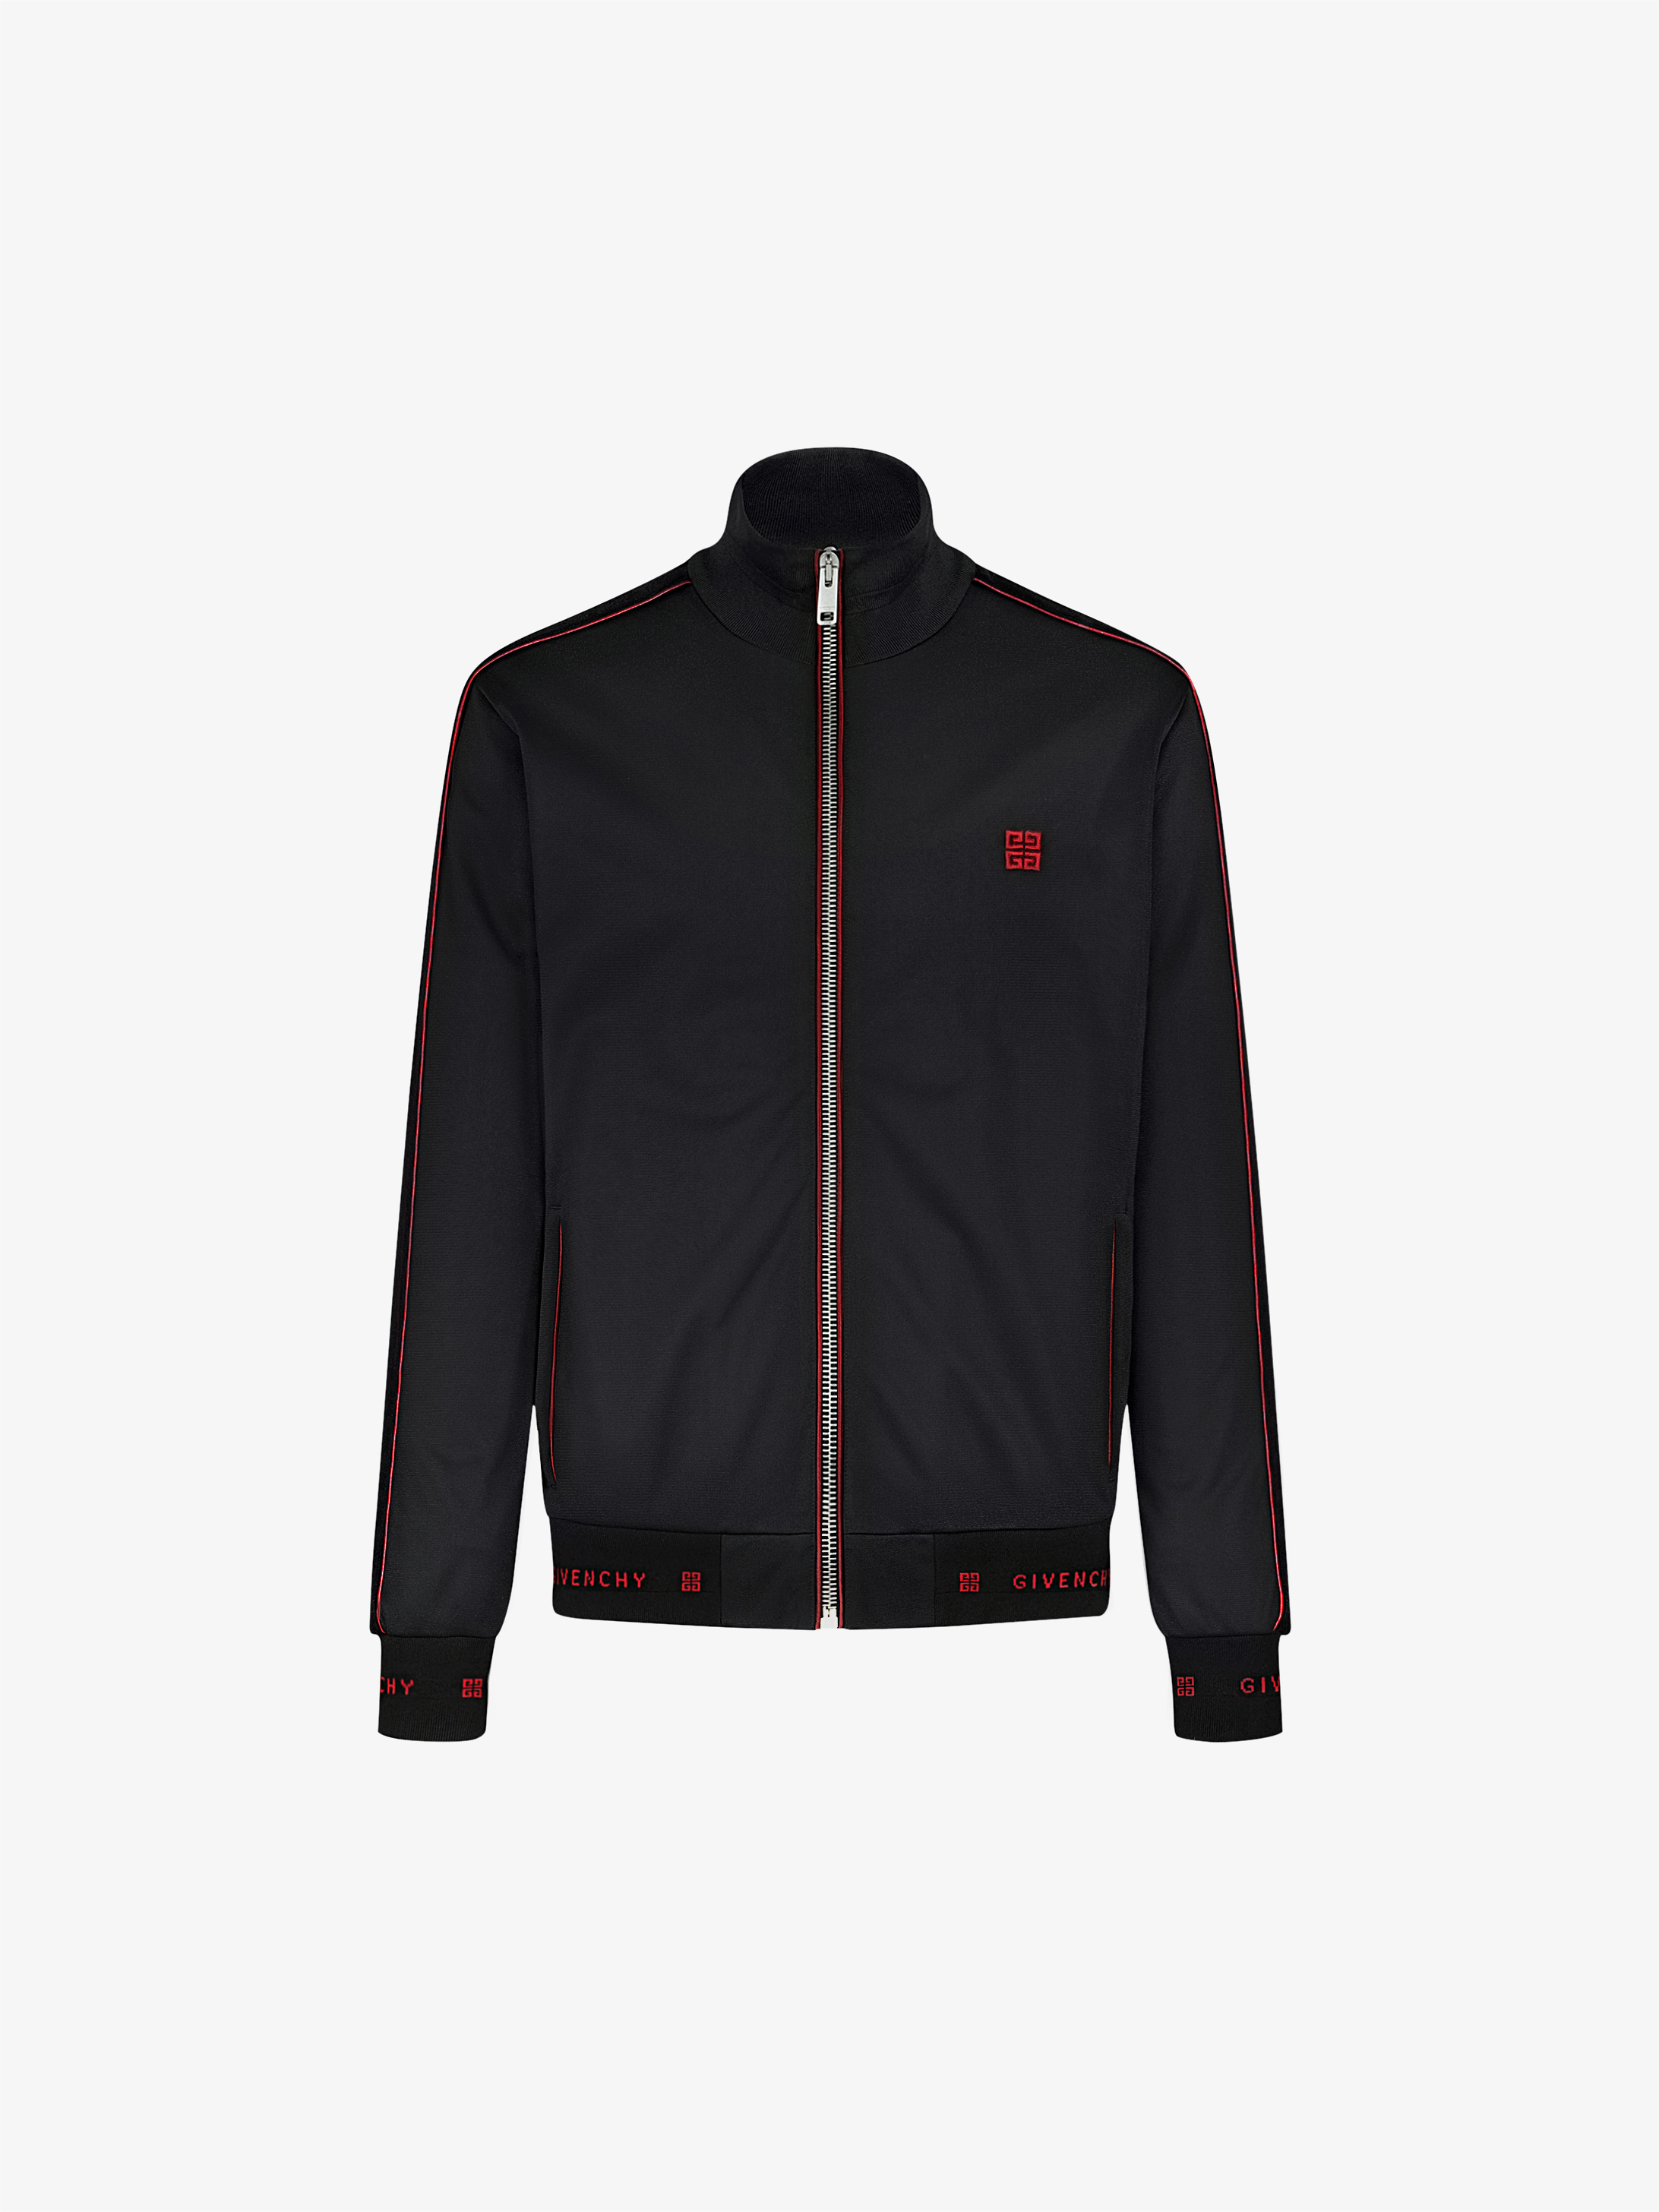 0b7029801 GIVENCHY 4G zipped tracksuit jacket | GIVENCHY Paris